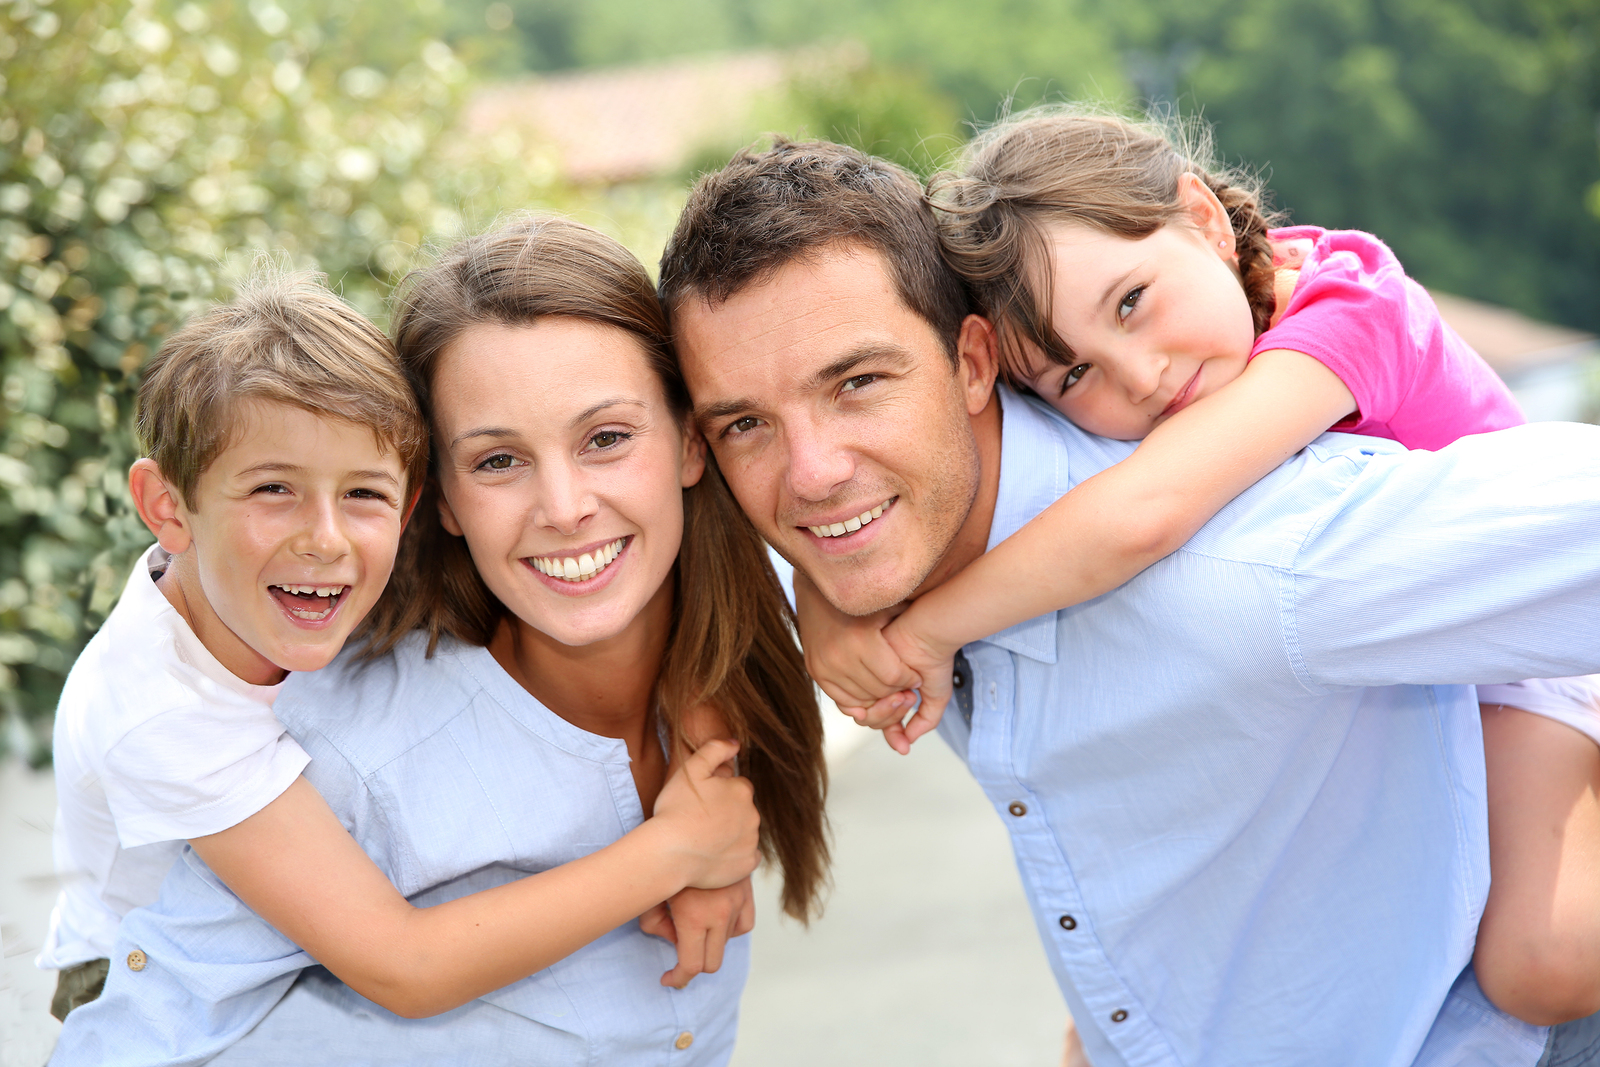 bigstock-Portrait-of-happy-family-with-48536213.jpg